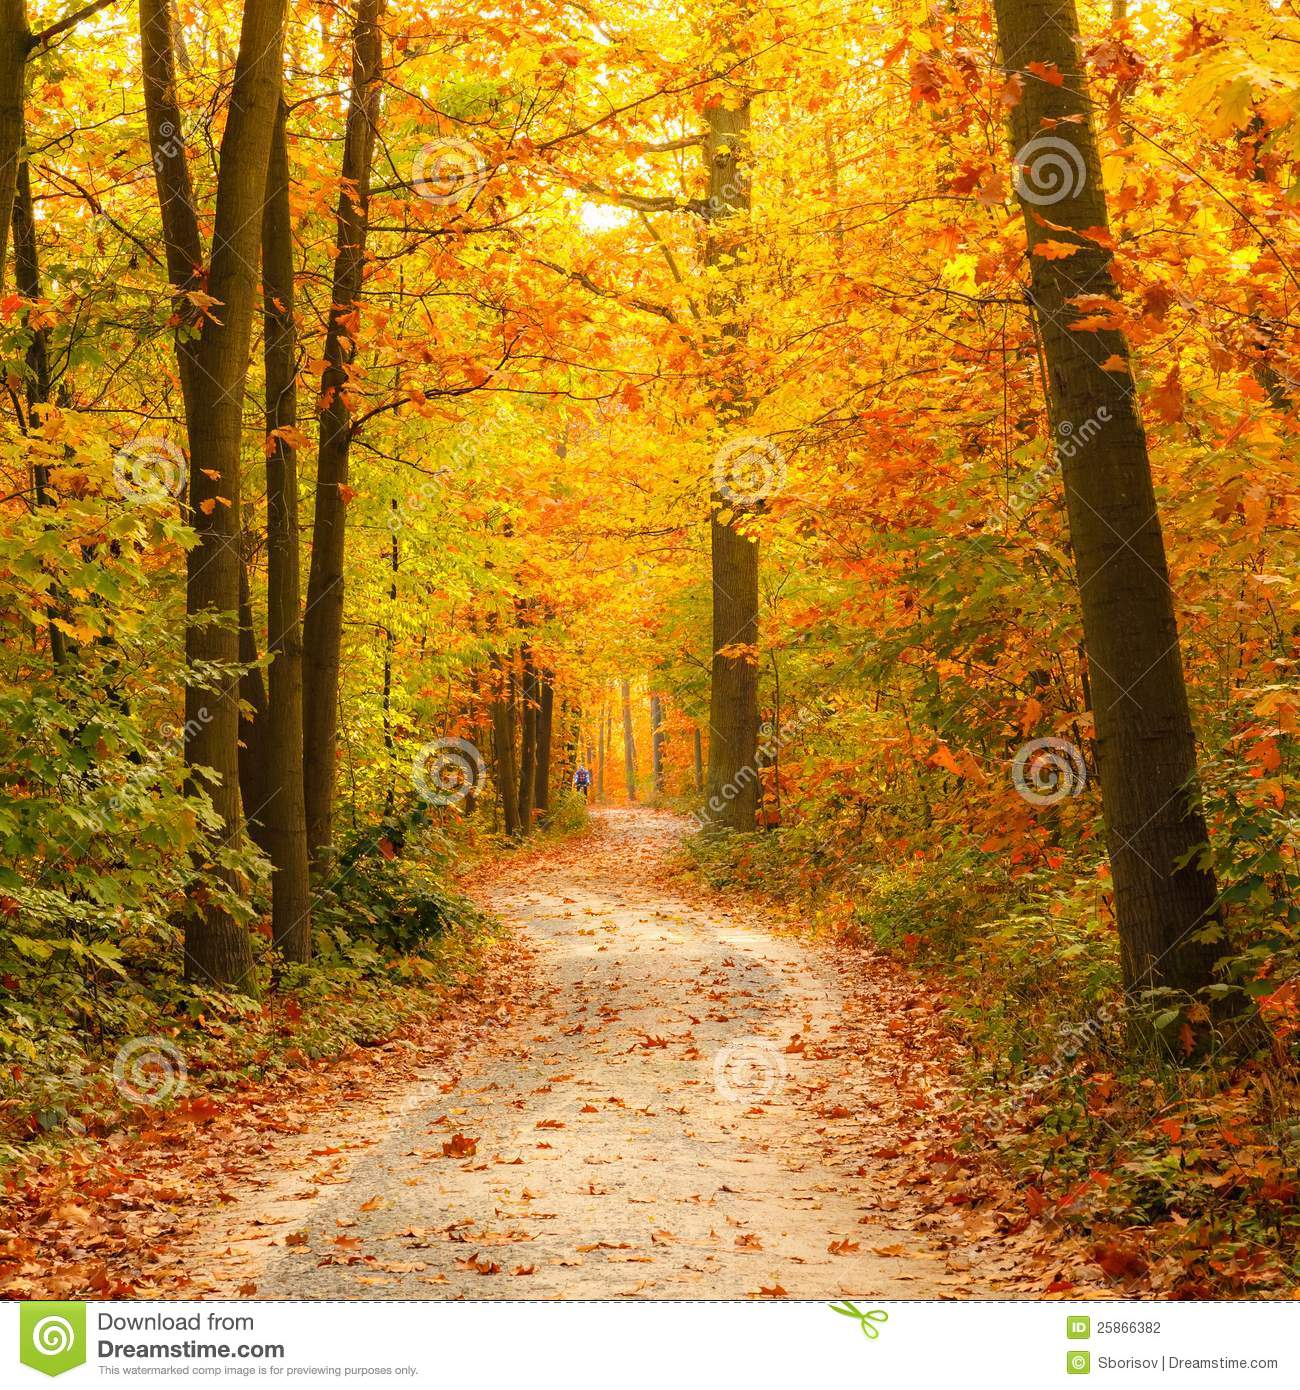 Wallpaper Images Of Fall Trees Lined Lake Pathway In The Autumn Forest Stock Photography Image